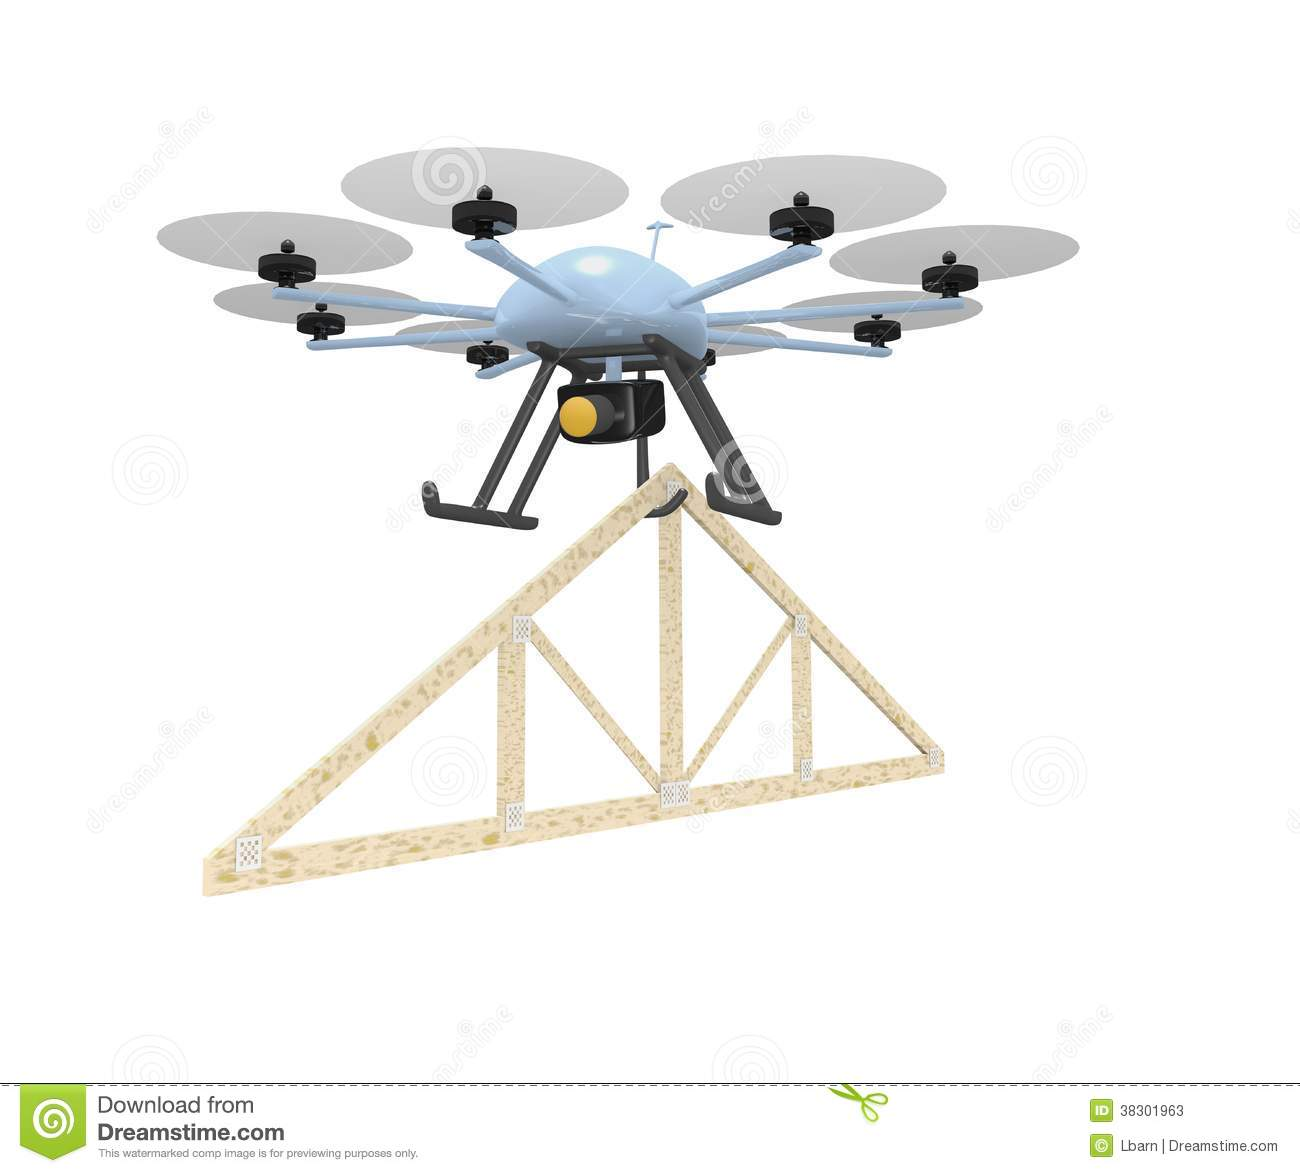 camera helicopter remote control with Stock Photos Drone Roof Truss Construction Concept Hanging Under Delivering To Top Site Image38301963 on Aerial Photography With A Trex together with 32781645095 furthermore Watch furthermore Solutions Kratos besides 2015 Hot Sale New Ir Tanks Remote Control Tank Spy Mini Rc Tank For Kids Childrens Toy Gifts Robot Preschool Educational Toys.